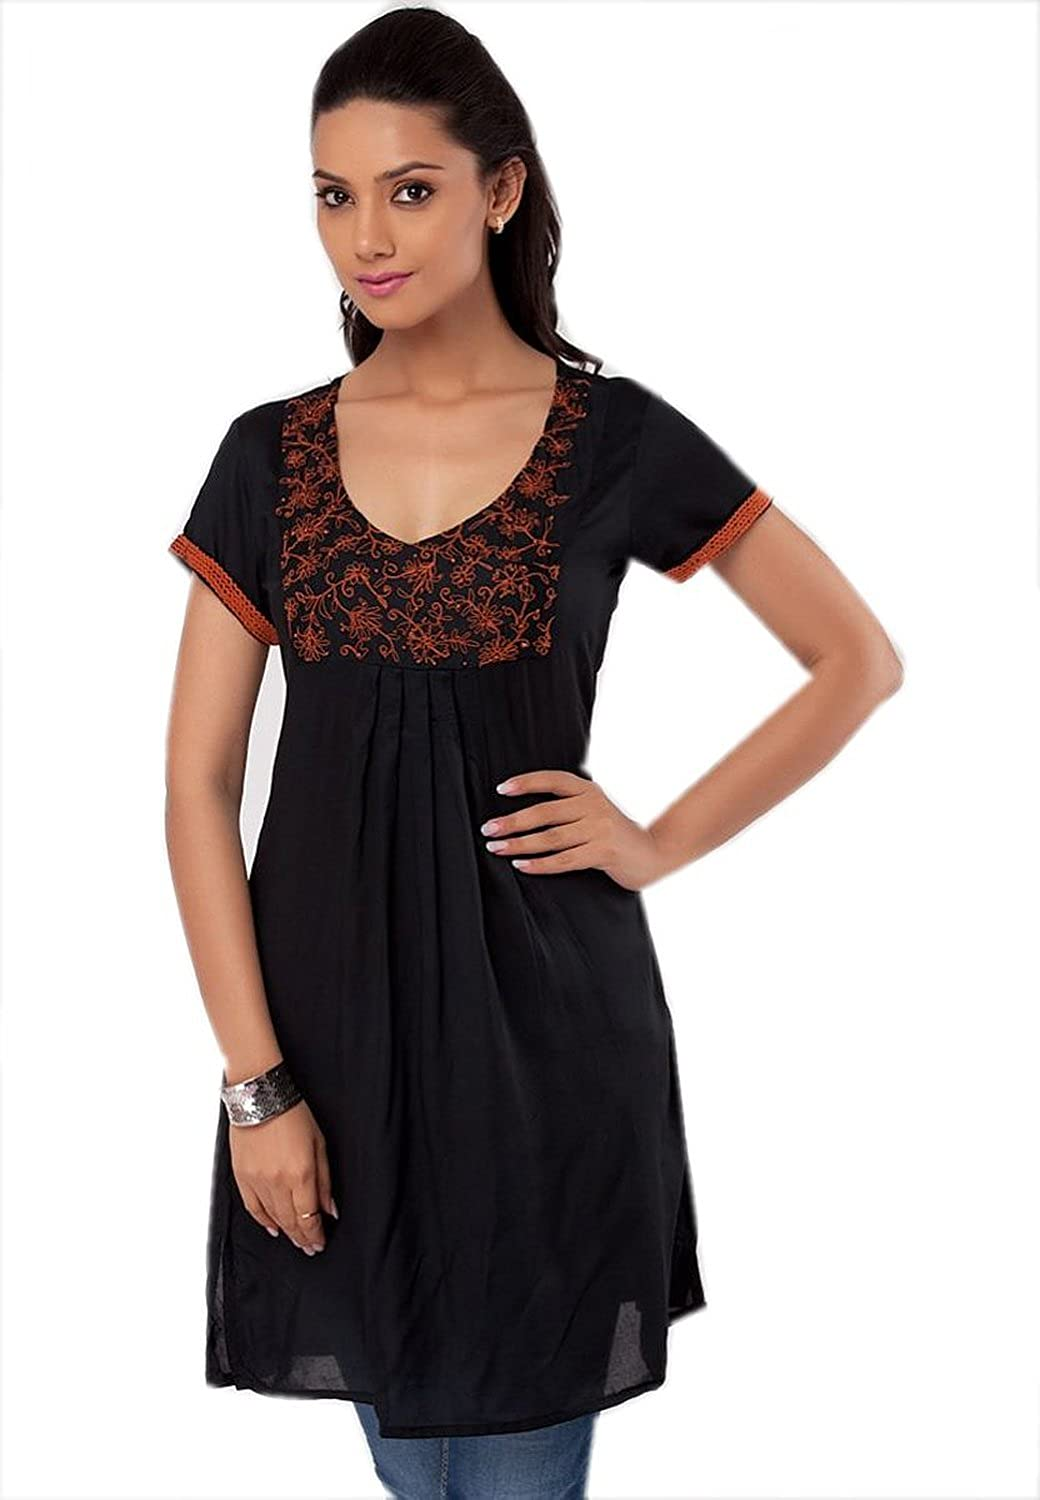 1545 Designs Women's Plus Size Black Cotton Tunic V Neck Embroidered Top